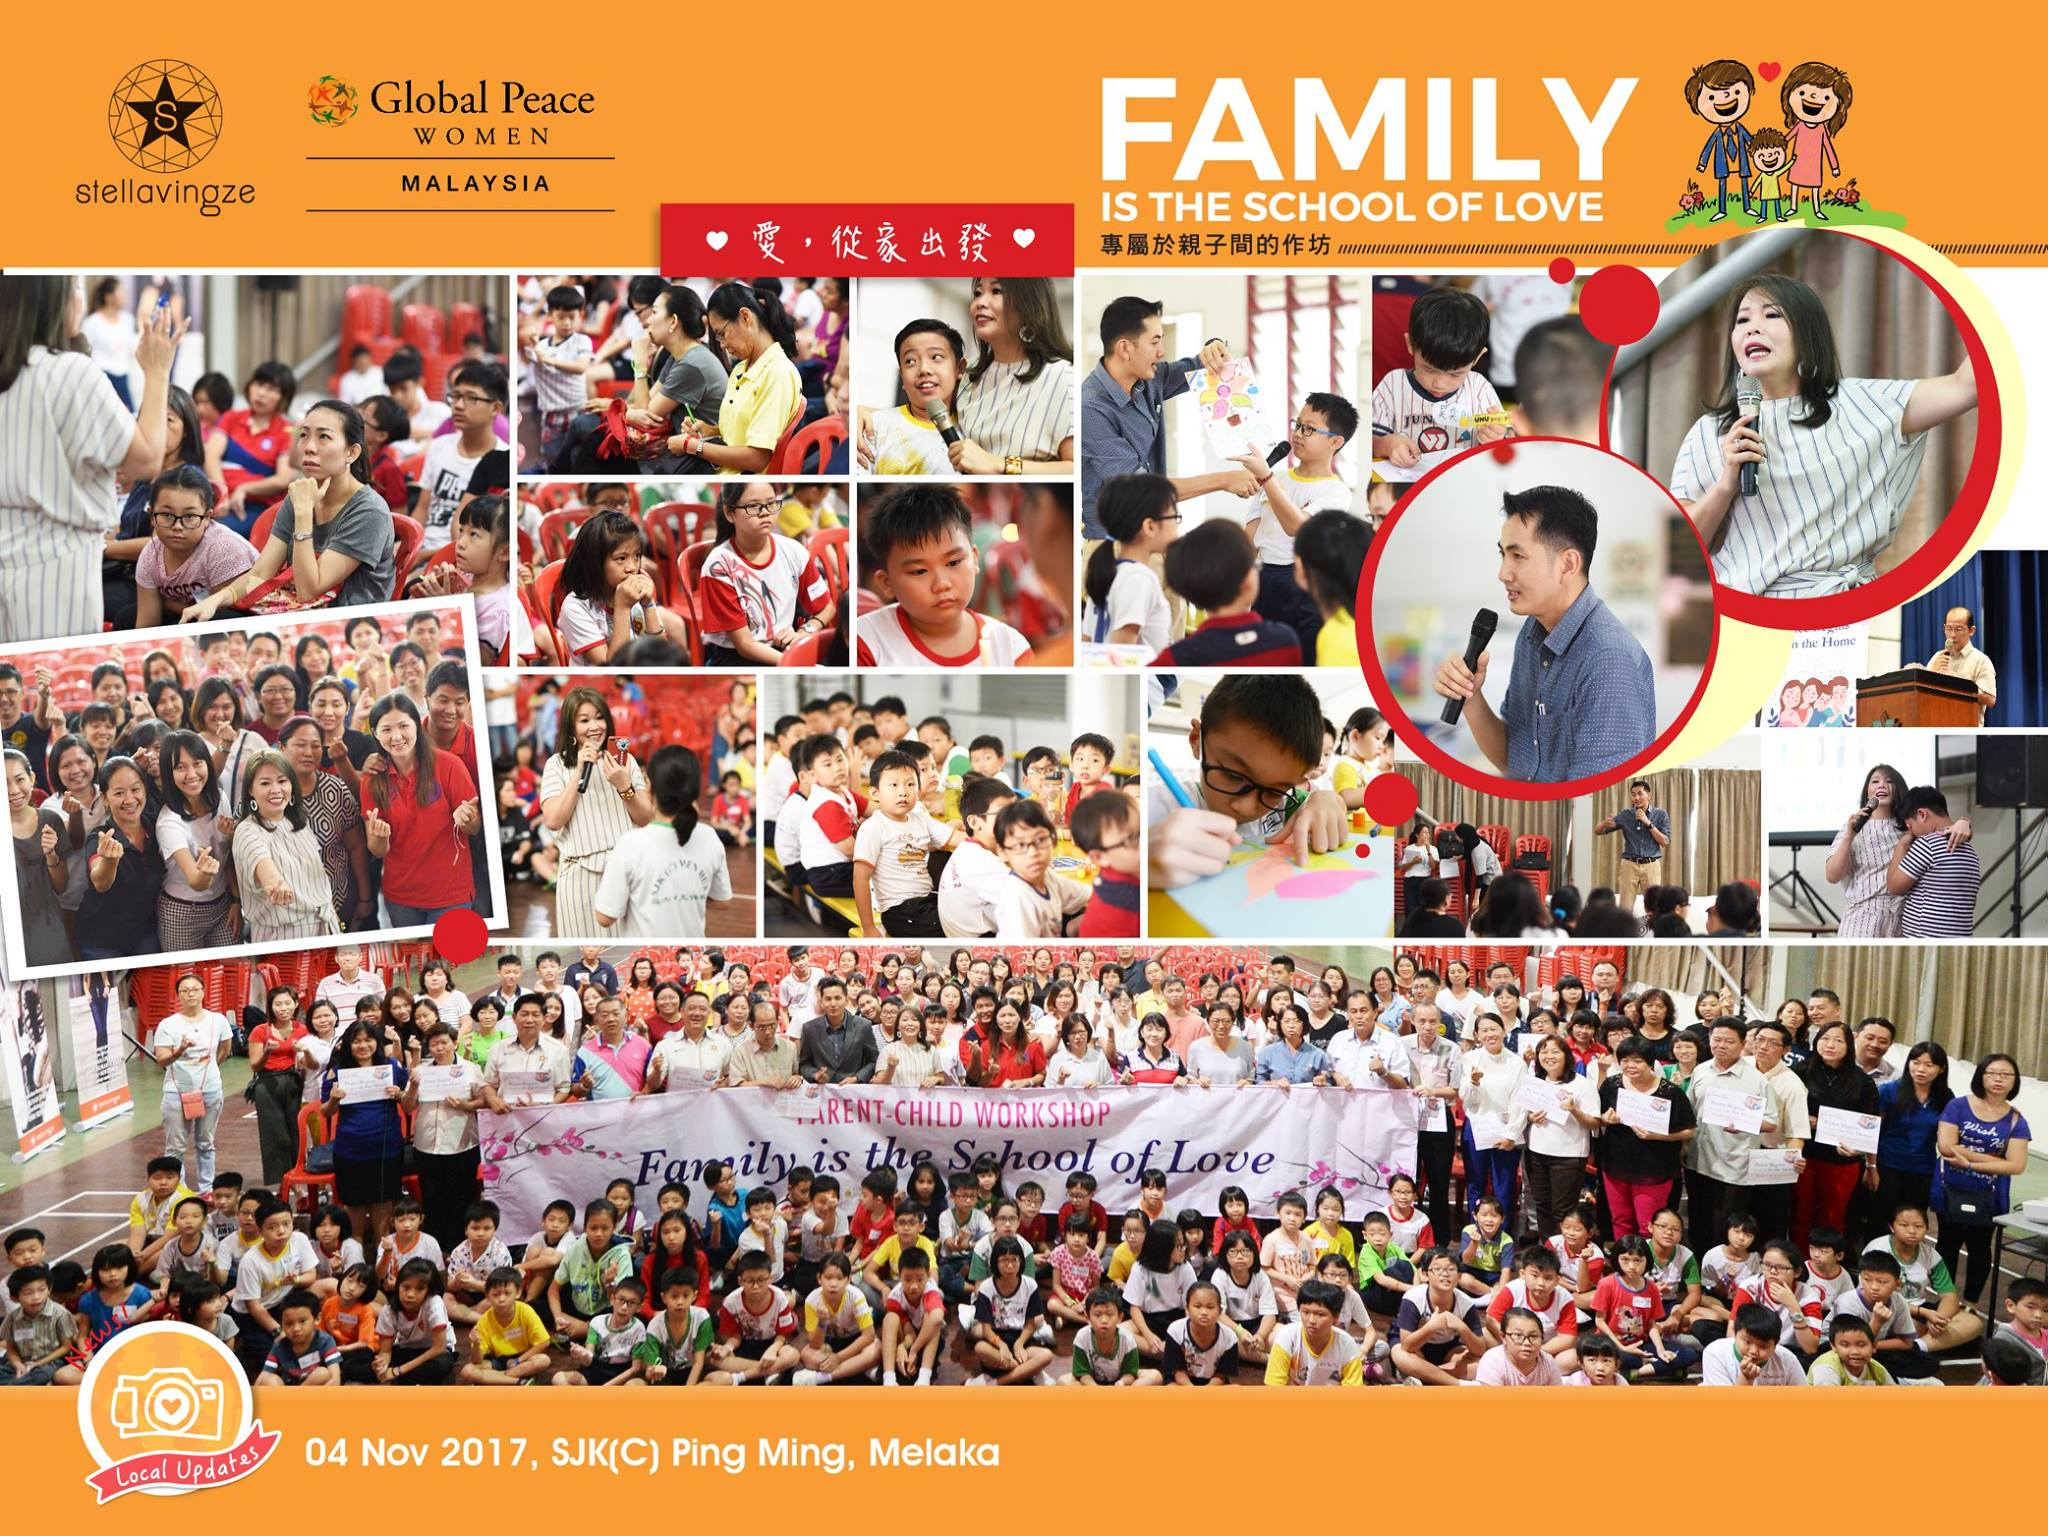 HOME is where Family stays together  LOVE is what builds Happiness within Family Children need your Presence not to your Presents. Let's build a Happy Family for our child to grow happily.   #StellavingzeInternational  #GlobalPeaceWomen  #GlobalPeaceFoundation  #FamilyIsTheSchoolOfLove  #愛從家出發